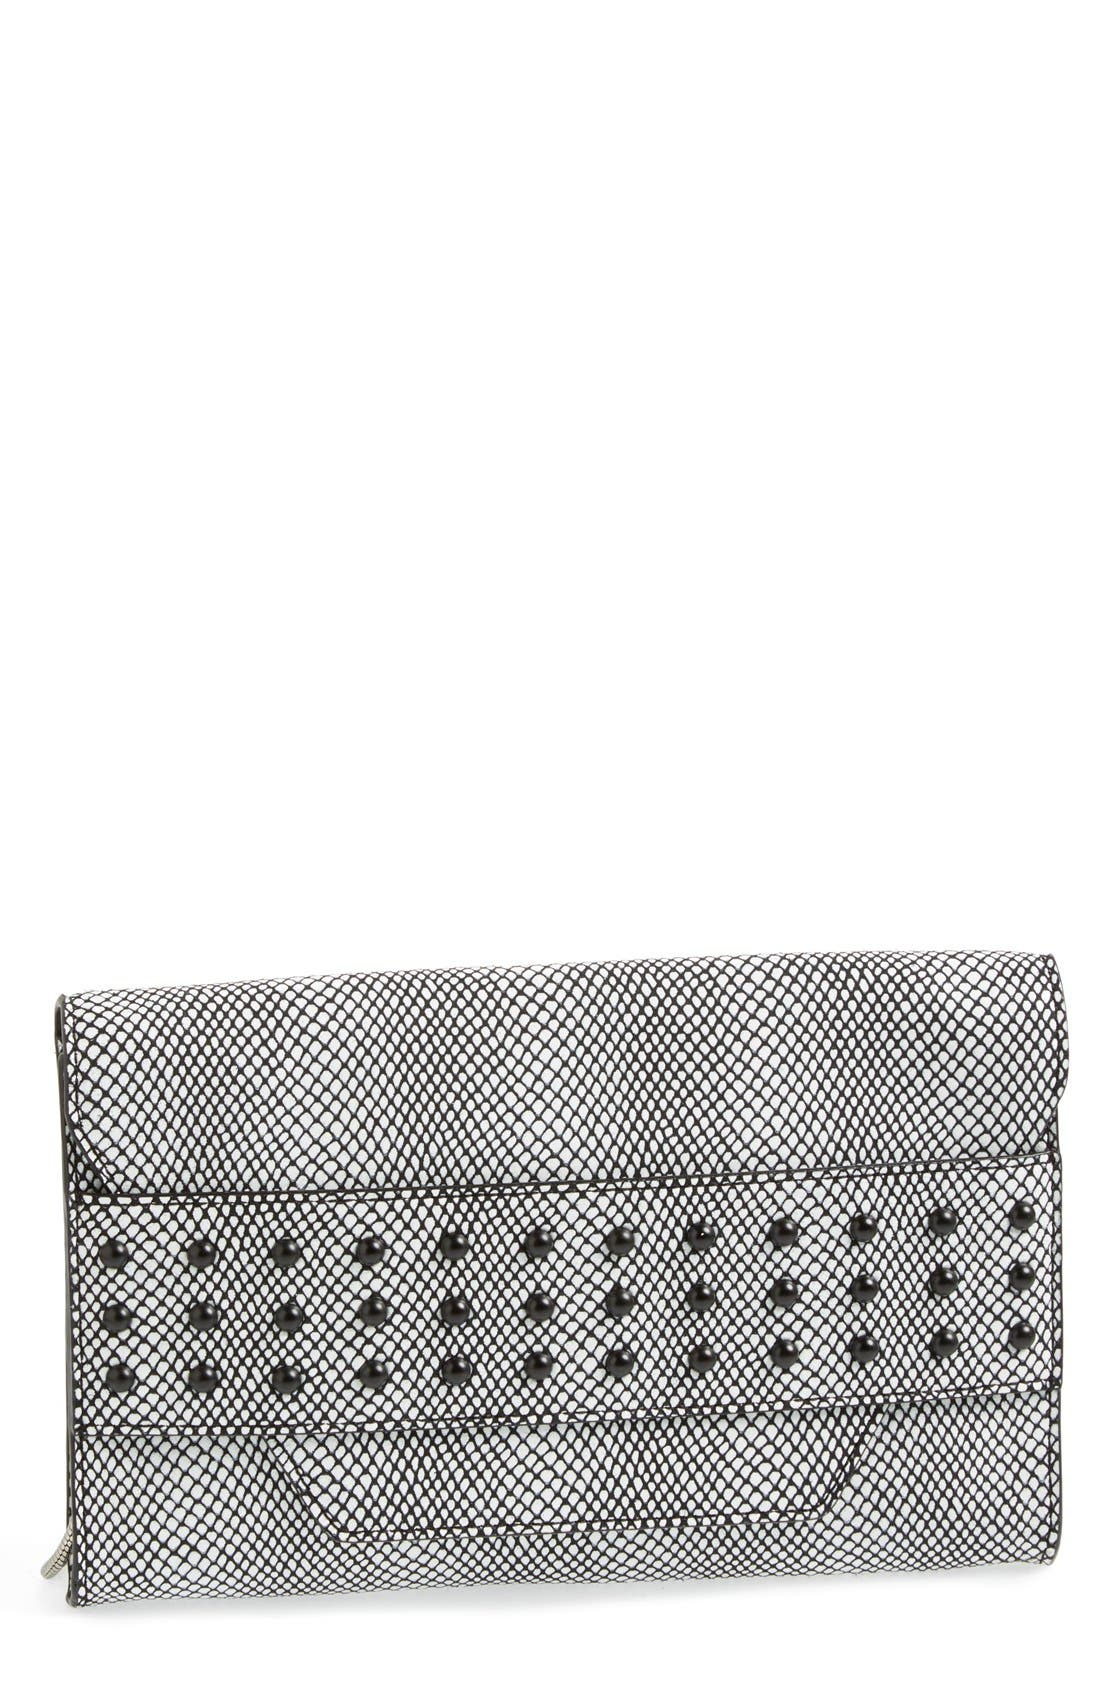 Alternate Image 1 Selected - Milly 'Irving' Clutch